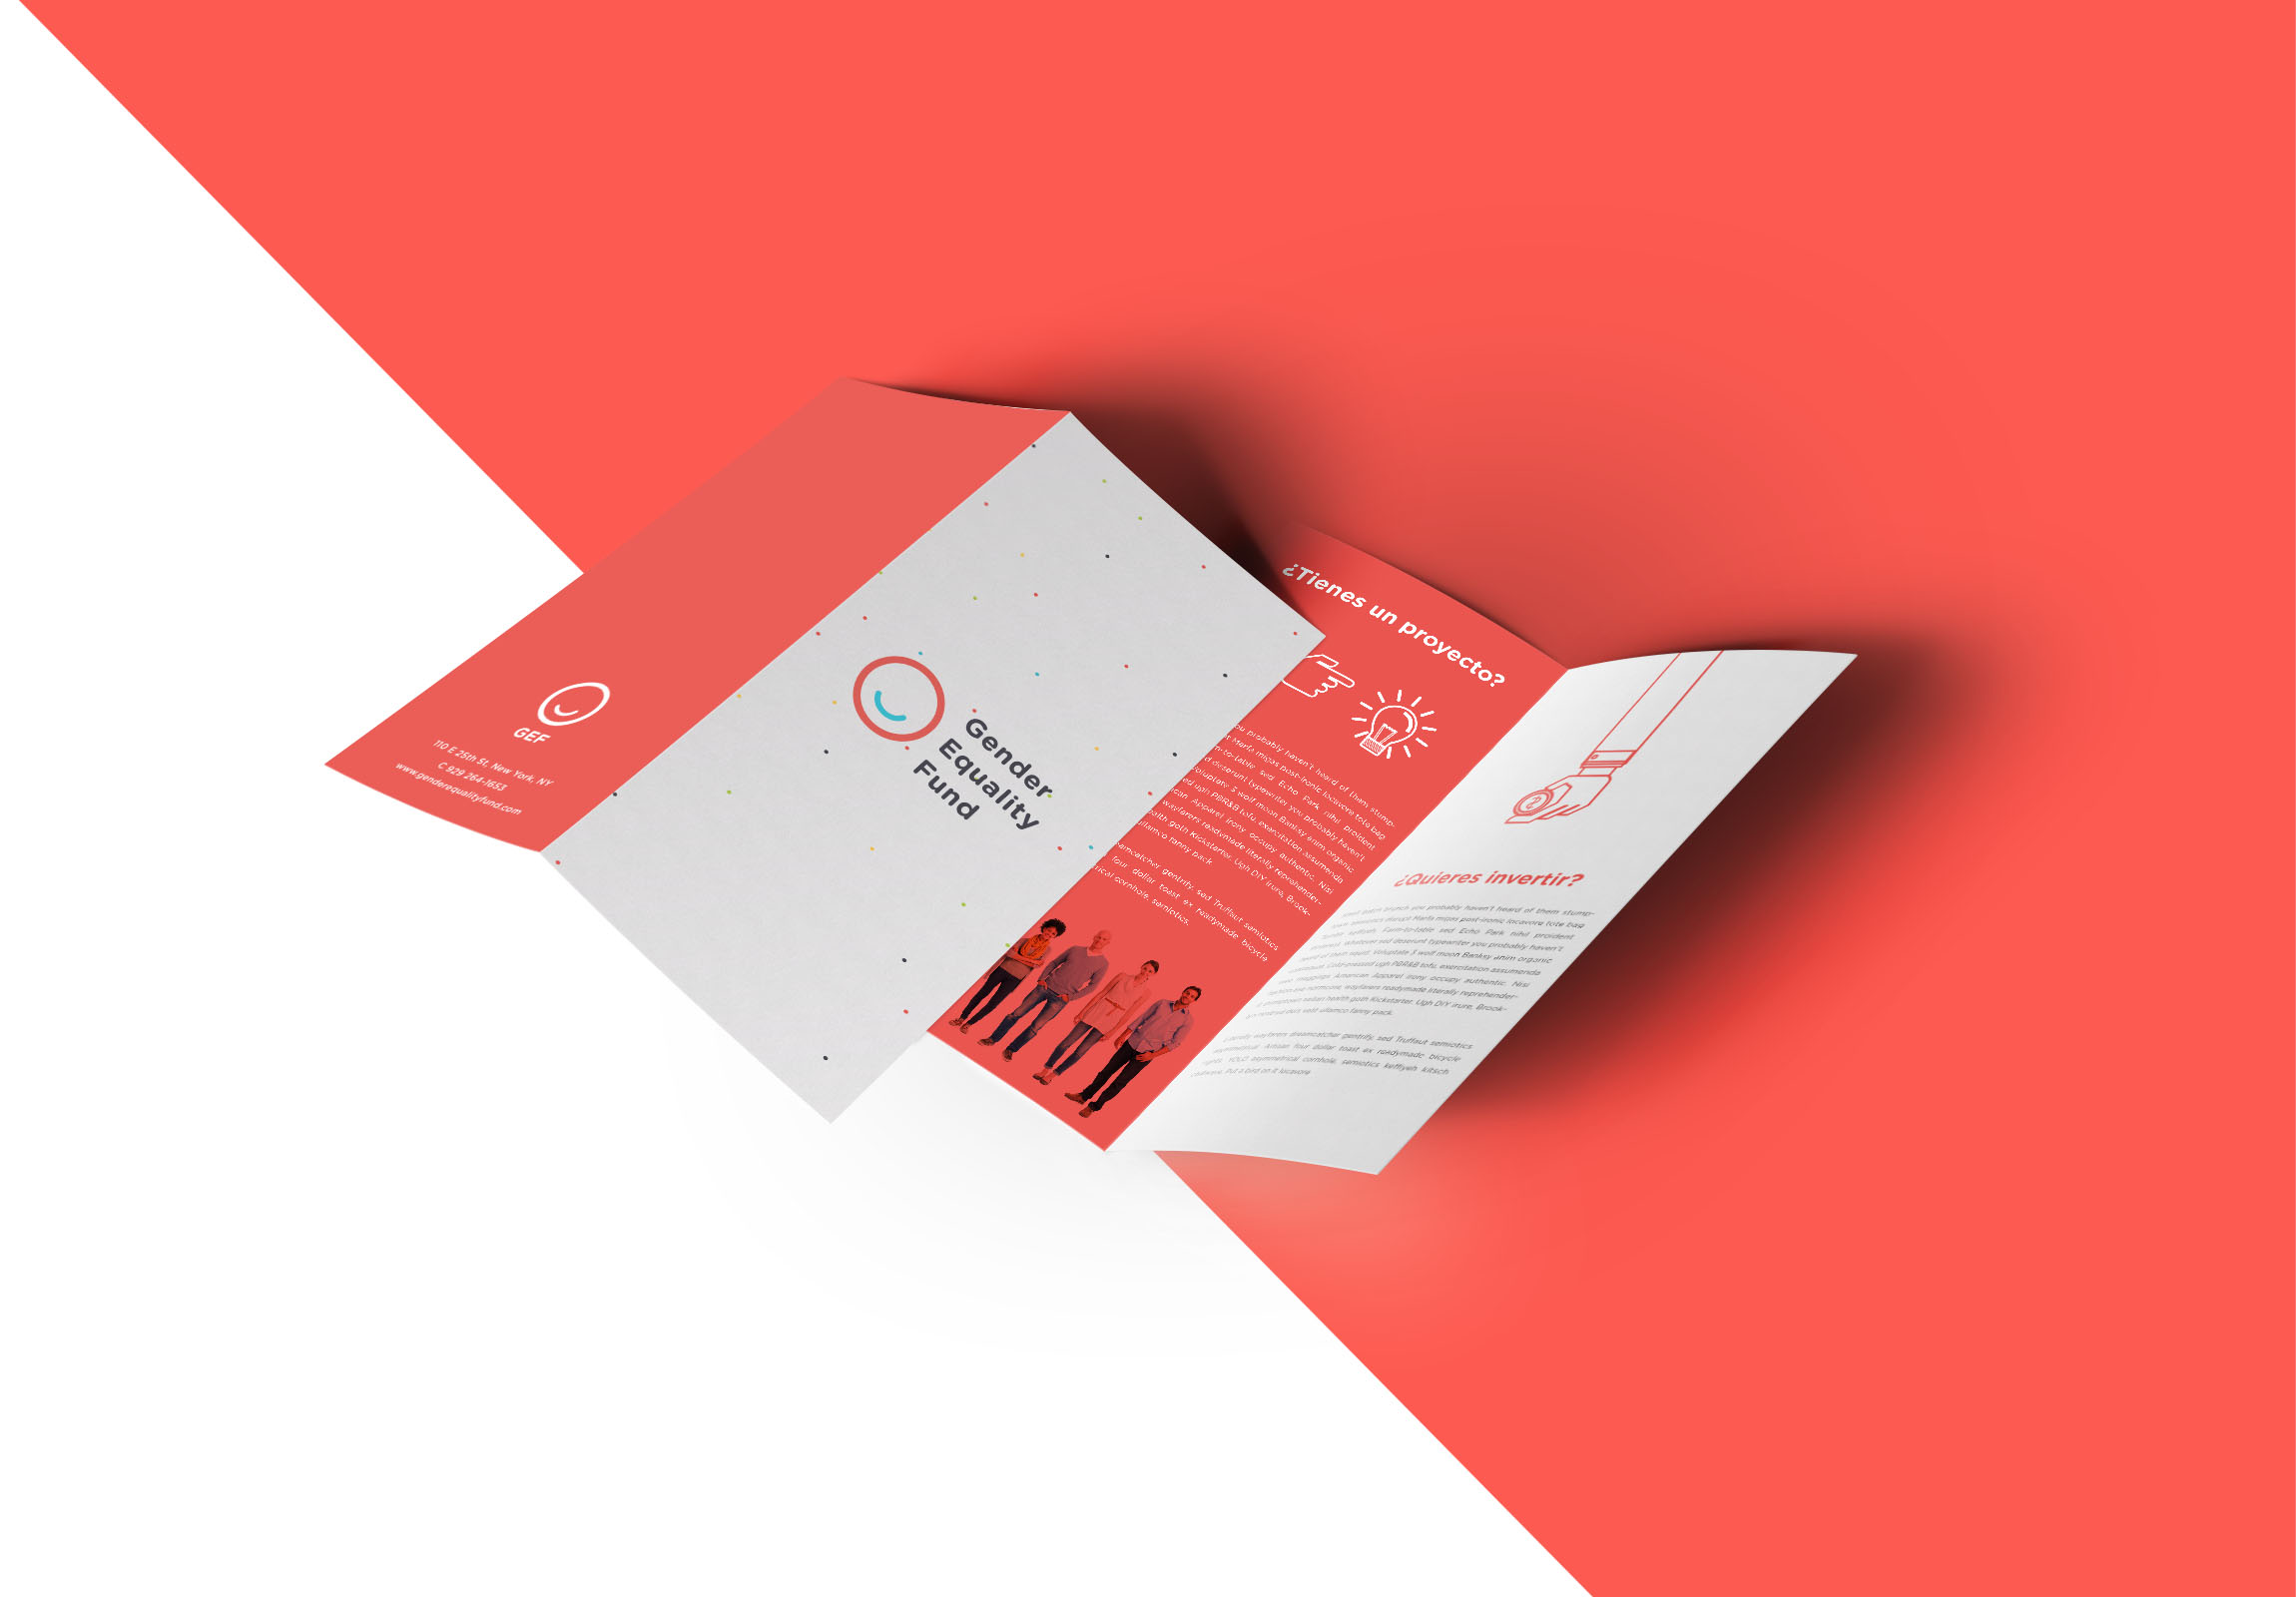 Graphic design brochure for crowd-investing plataform in Mexico